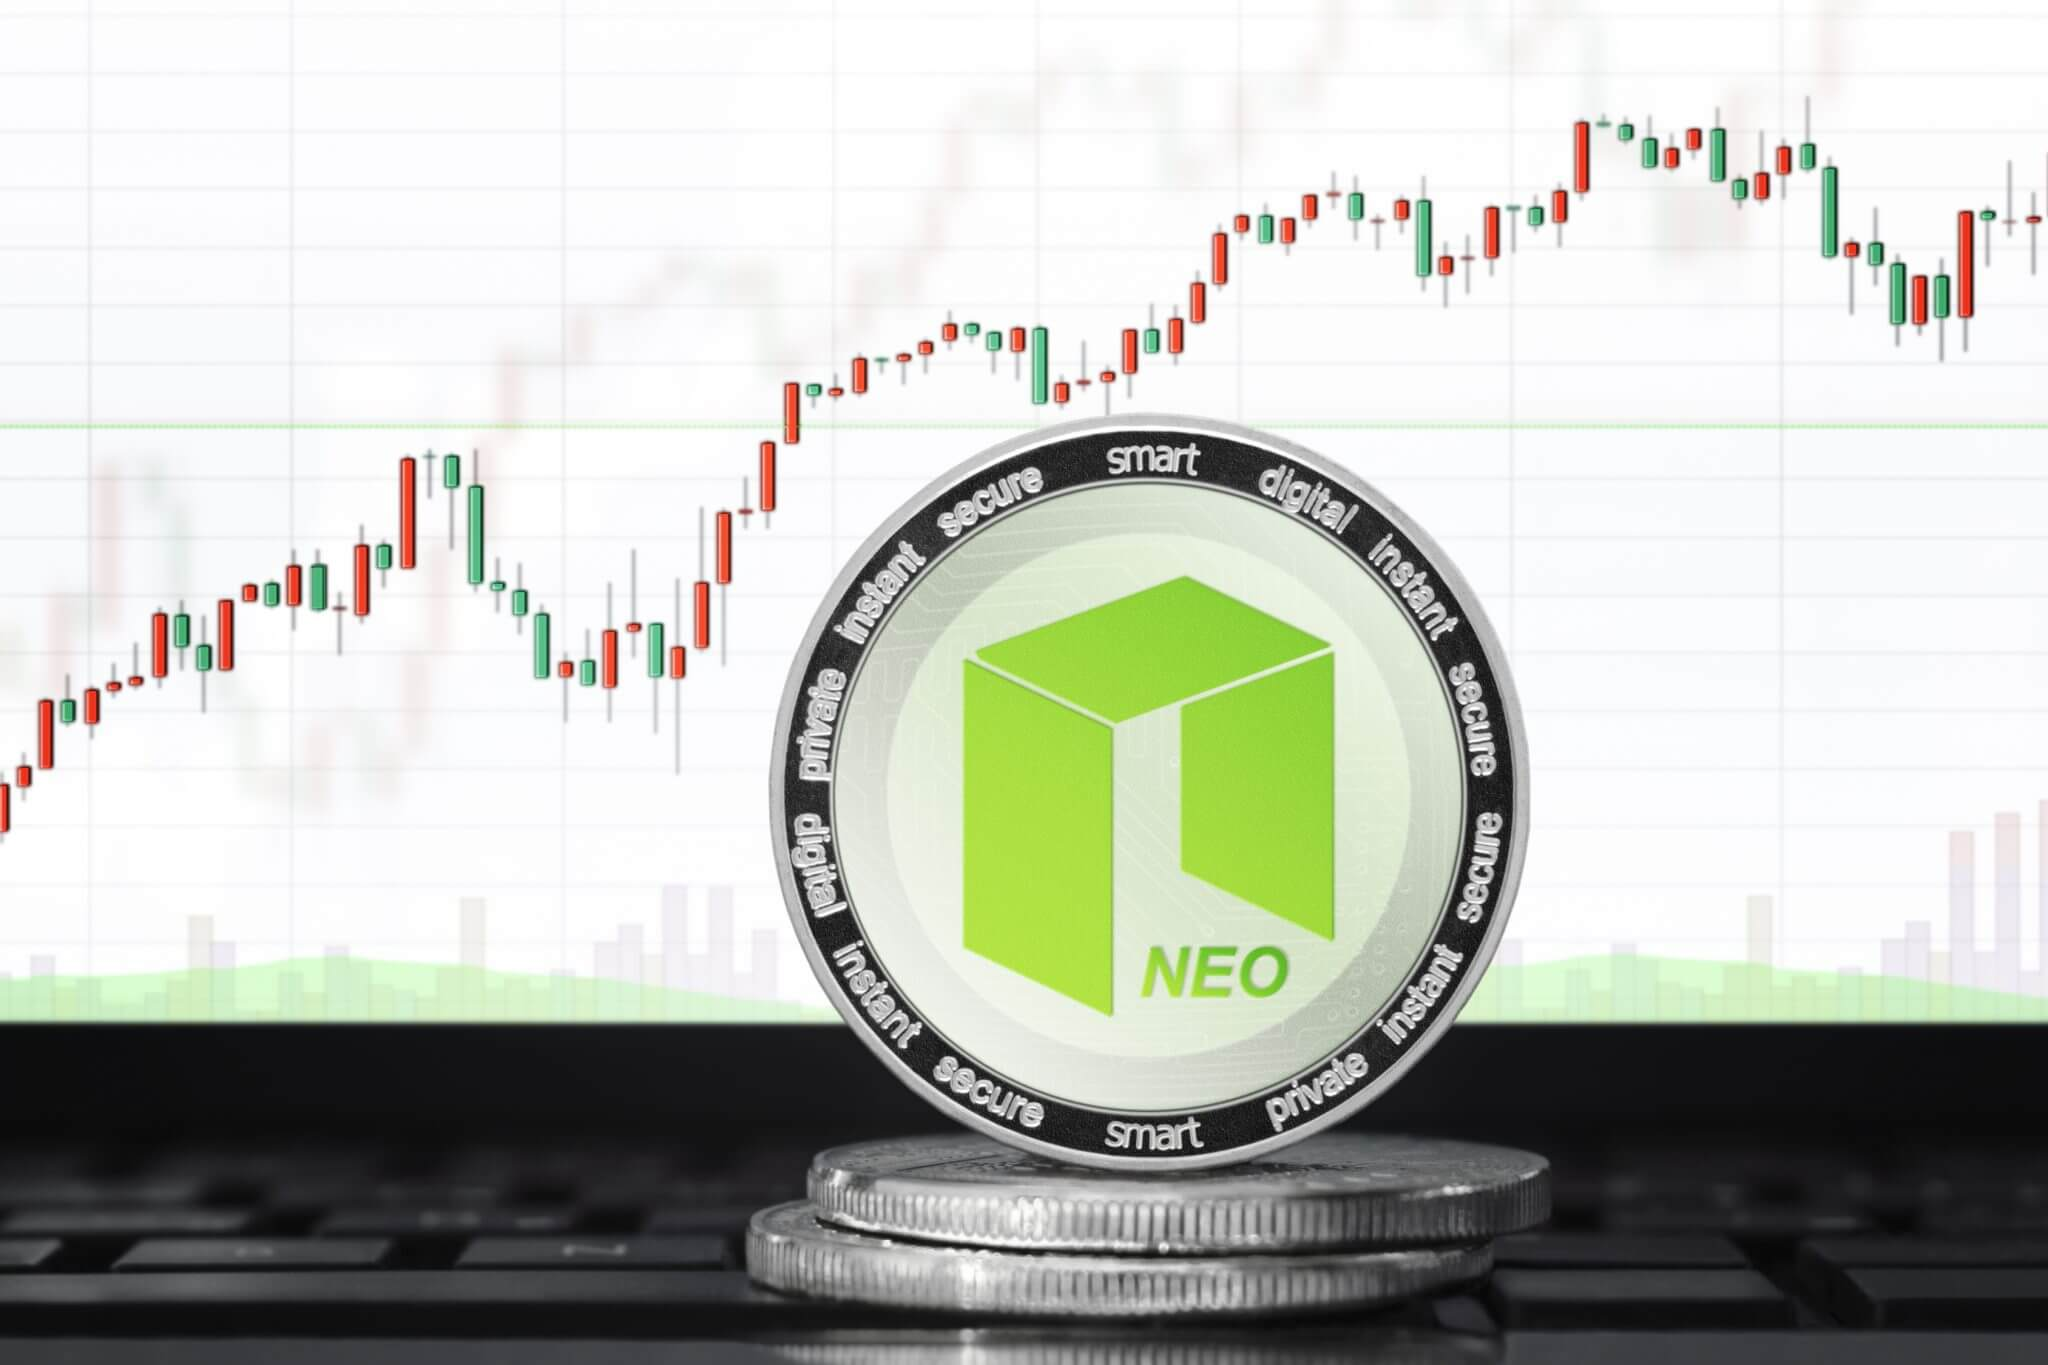 GAS and NEO